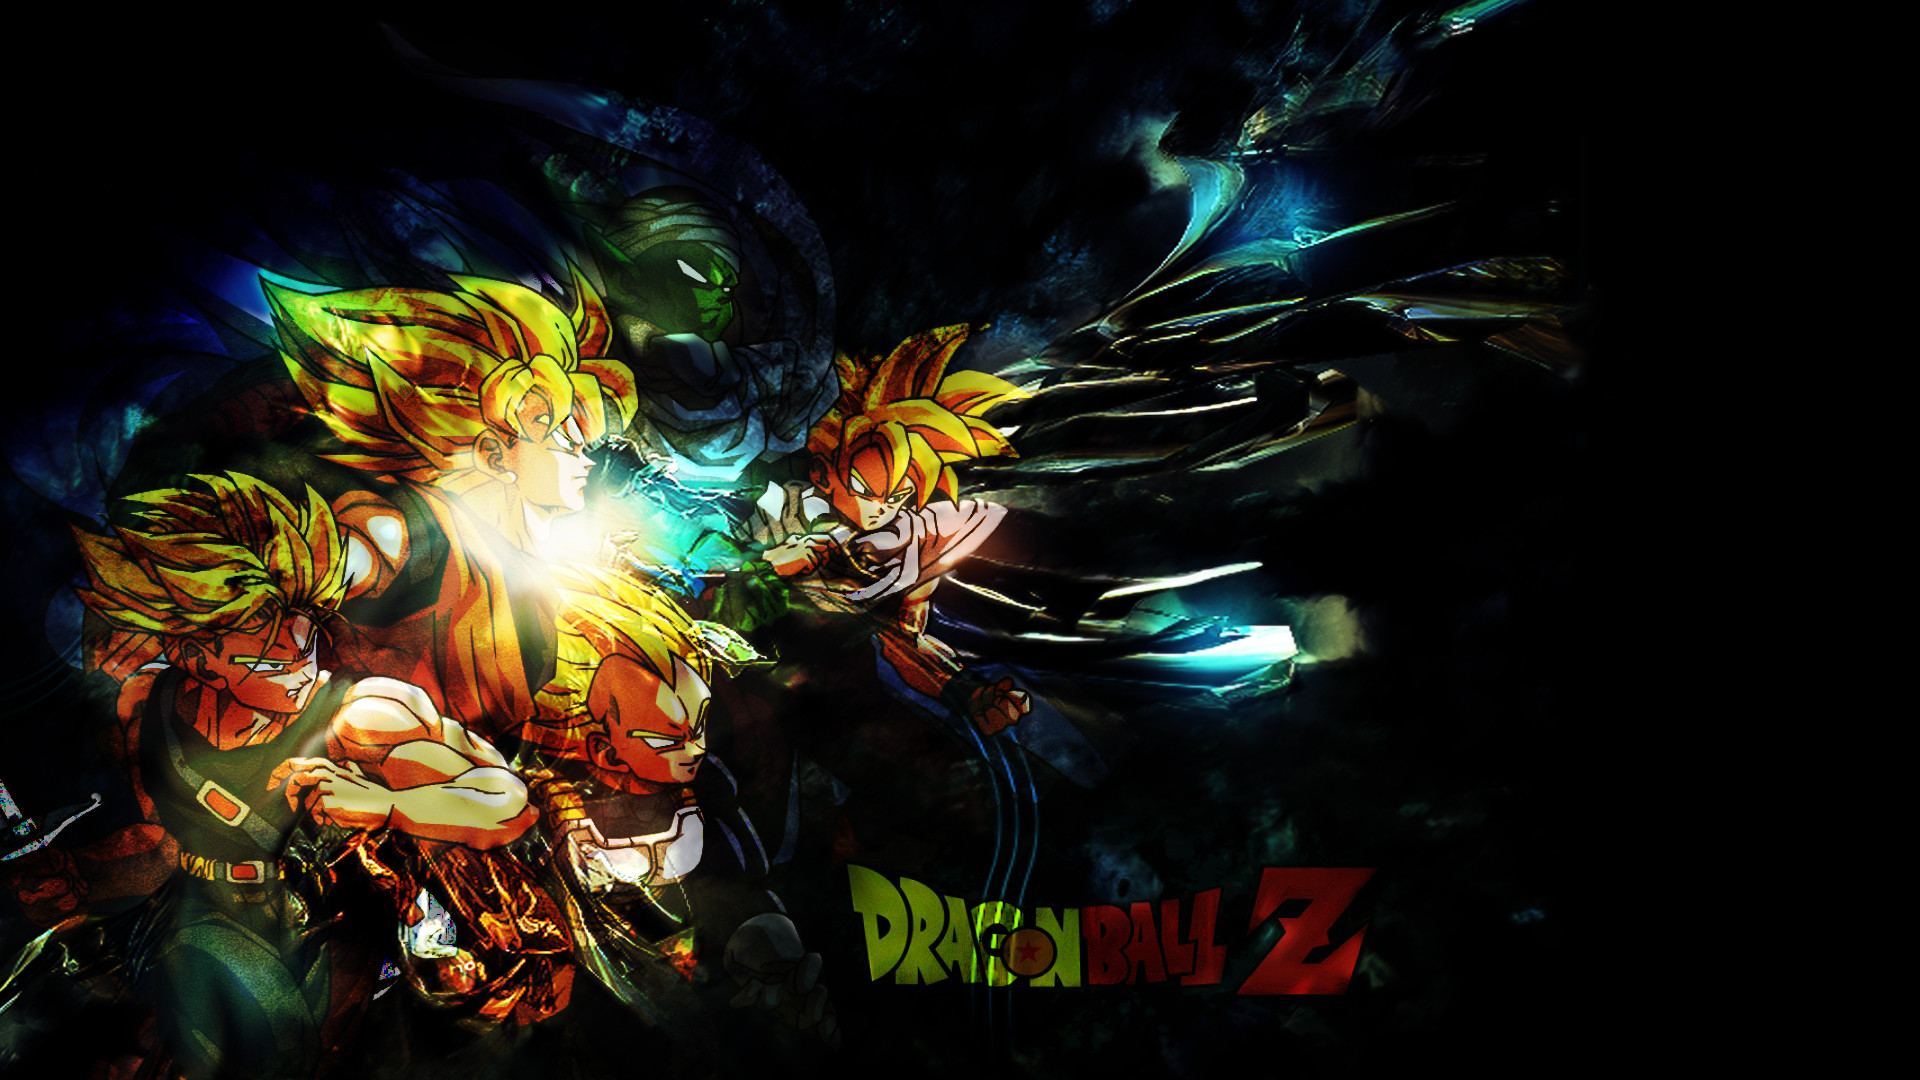 Dragon ball z hd wallpapers 69 images - 3d wallpaper of dragon ball z ...